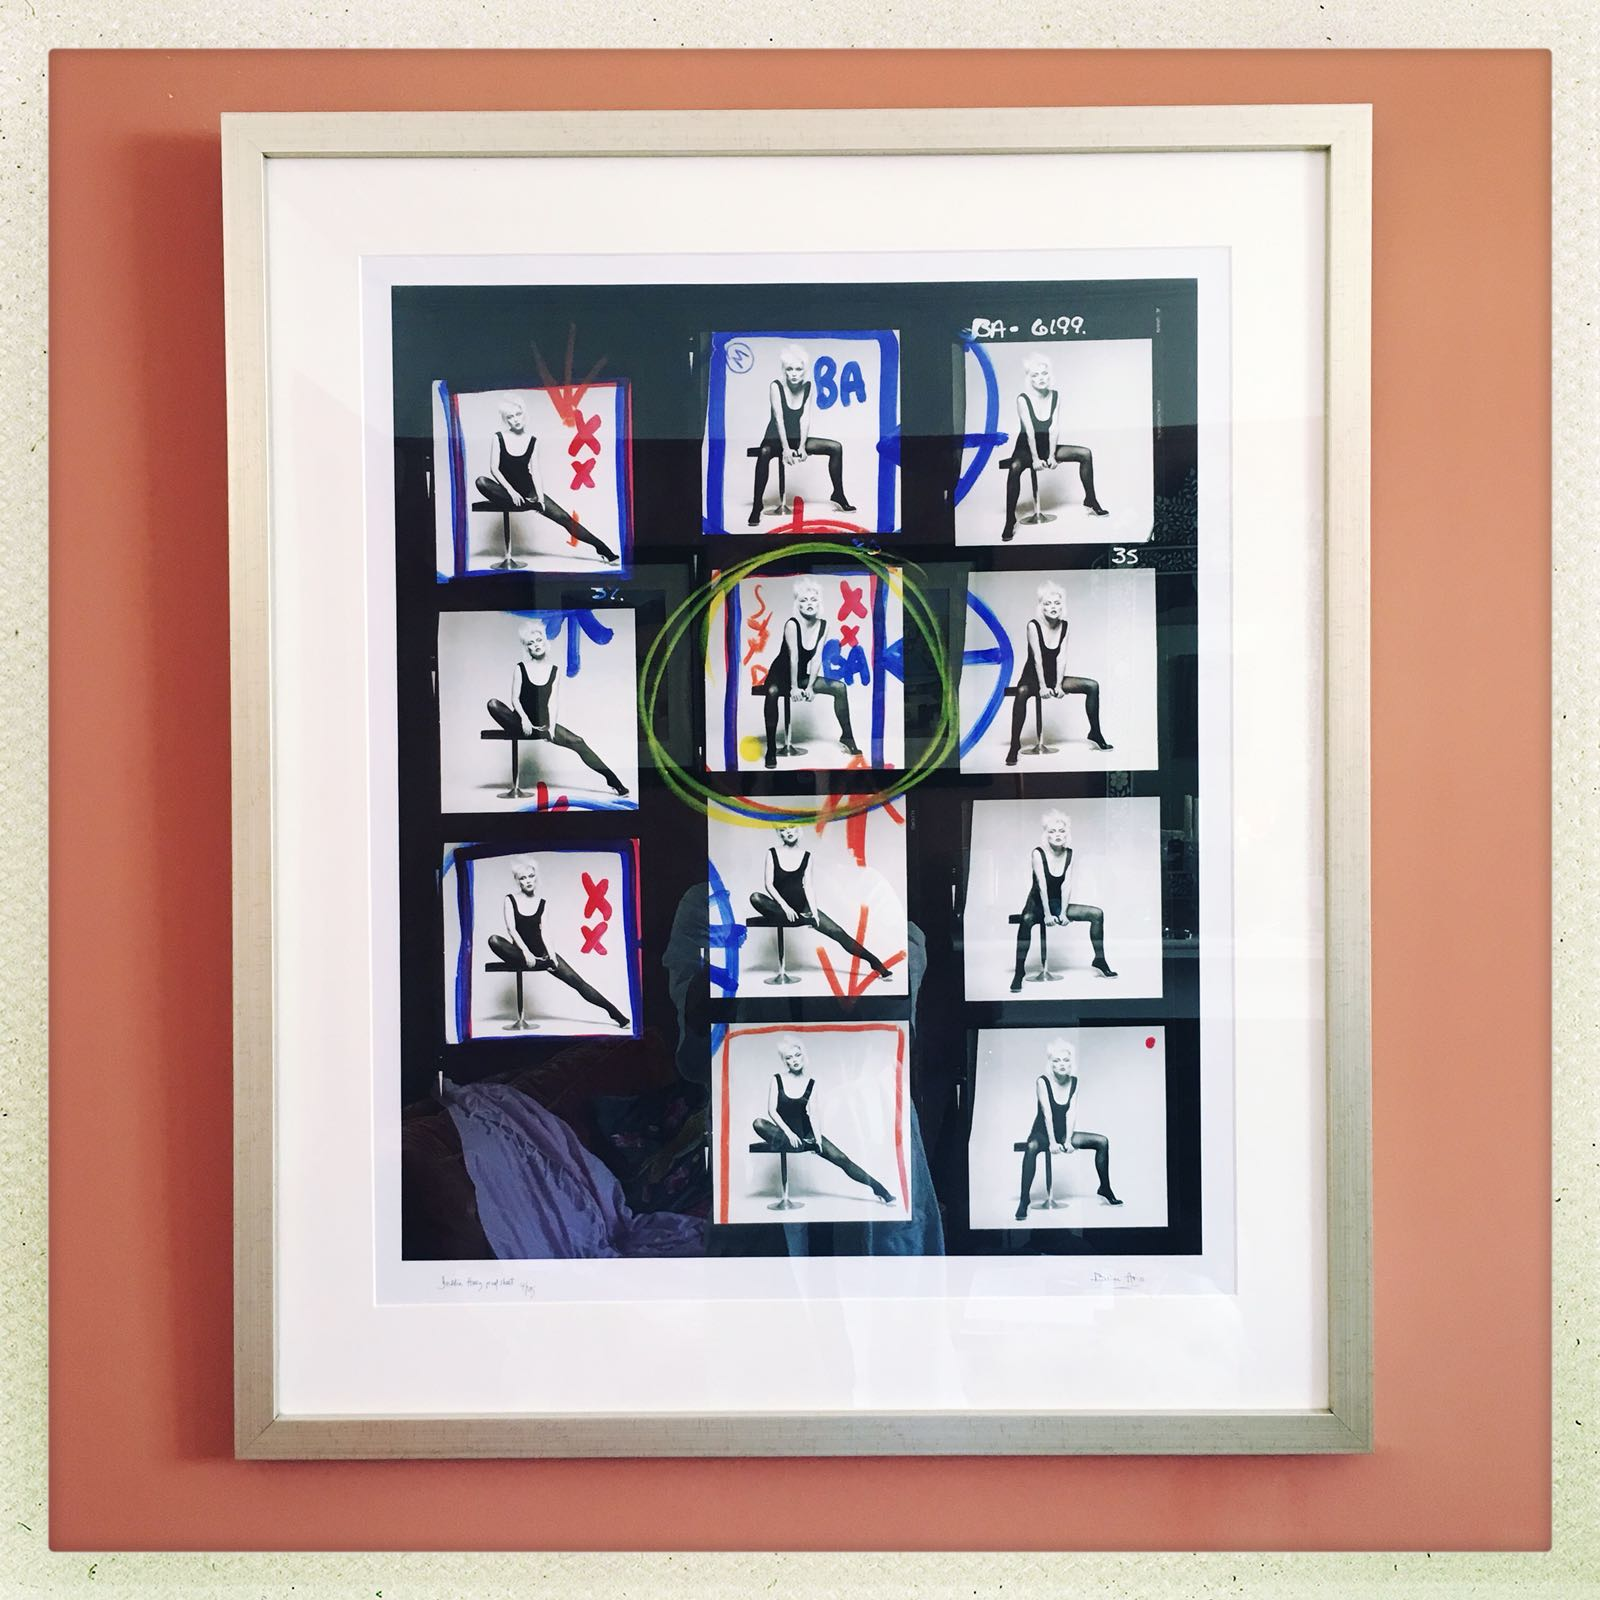 Debbie Harry proof sheet - limited edition 4 of 15 - 30' x 30' C-Type Lambda high quality print, limited ed. 4 of 15Set in neutral mount with 'brushed' look gold / silver frame.Framed price excluding delivery: £1,450.00